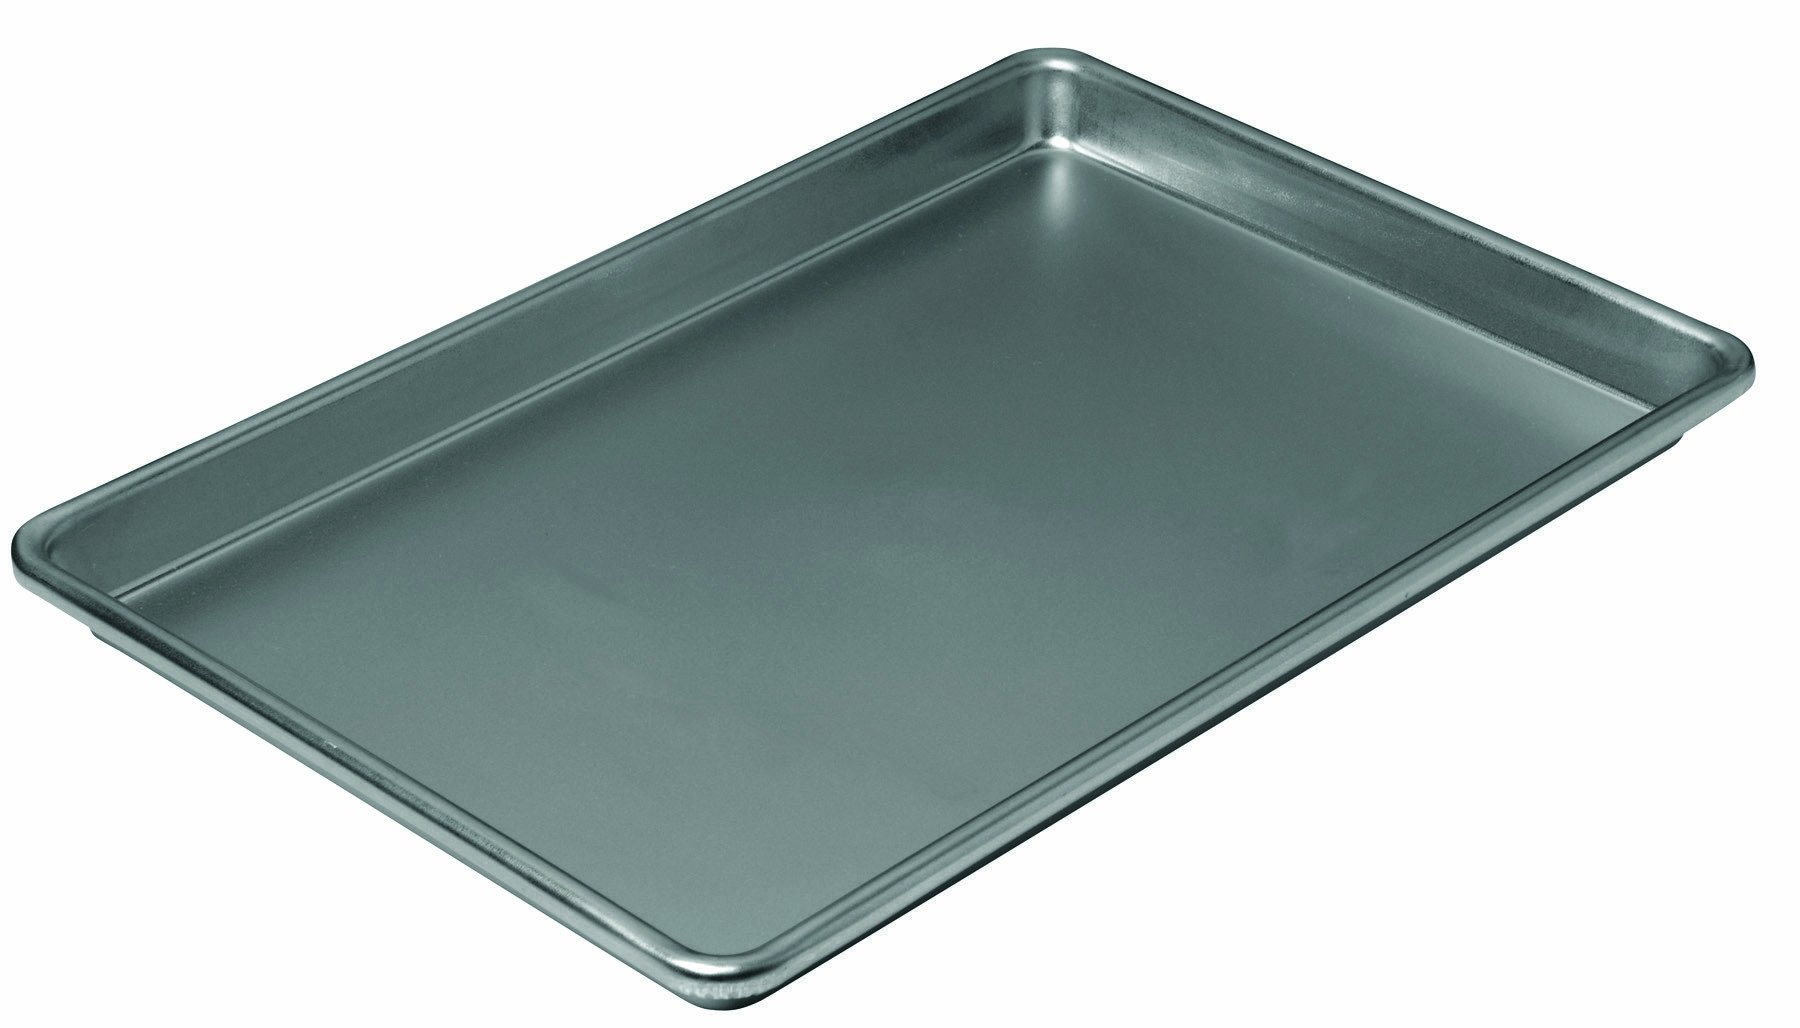 Chicago Metallic 16150 15'' X 10'' Chicago Metallic Non Stick Jelly Roll Pan